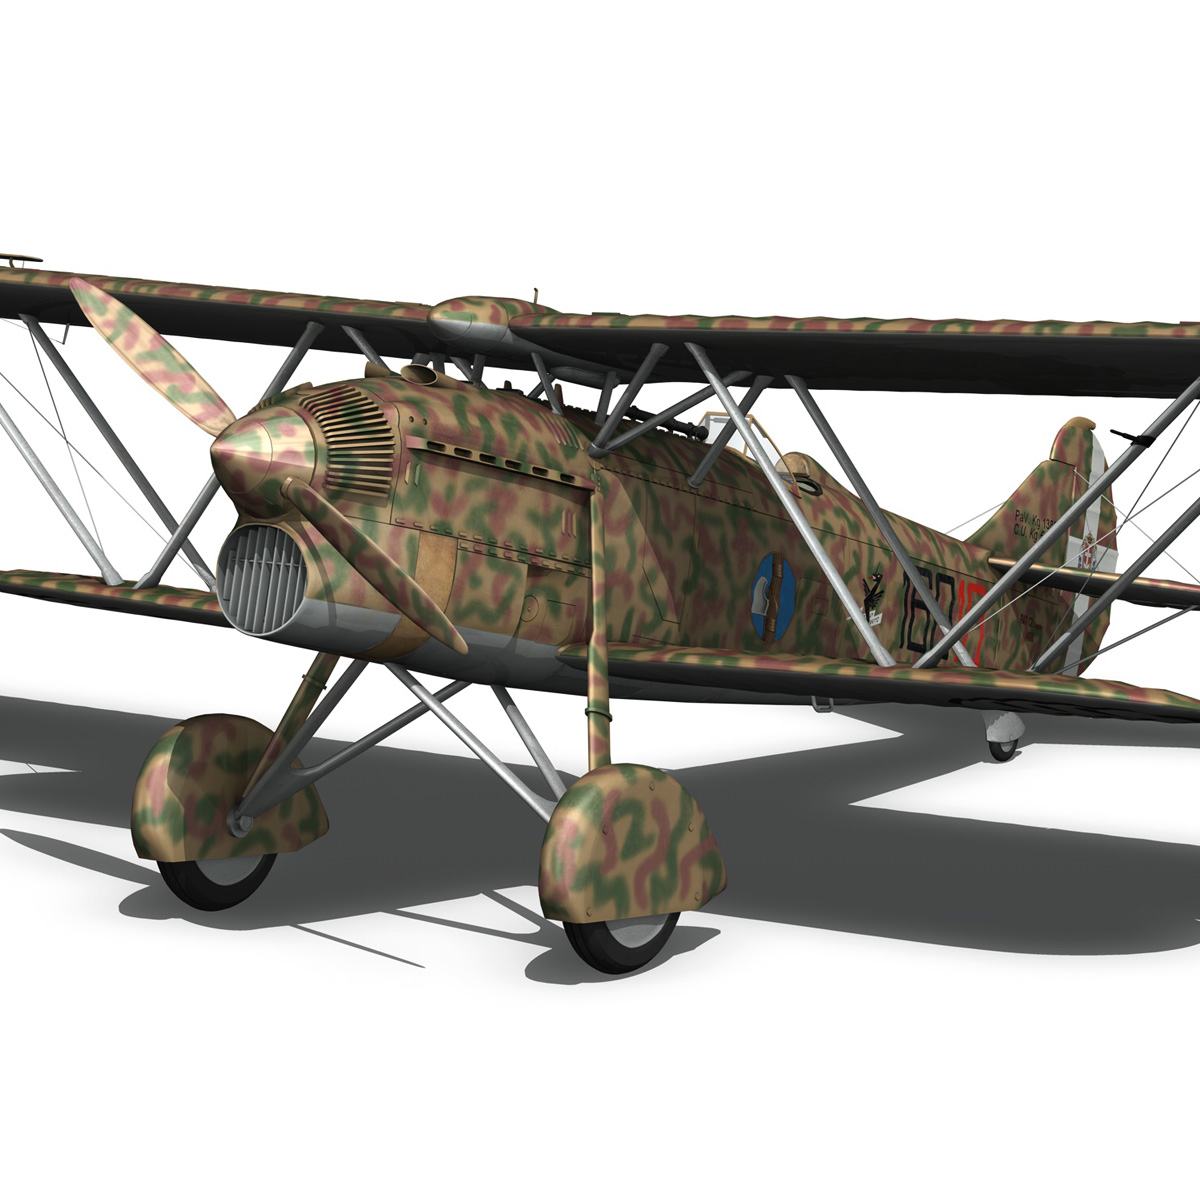 fiat cr.32 – italy airforce – 160 squadriglia 3d model fbx c4d lwo obj 268112